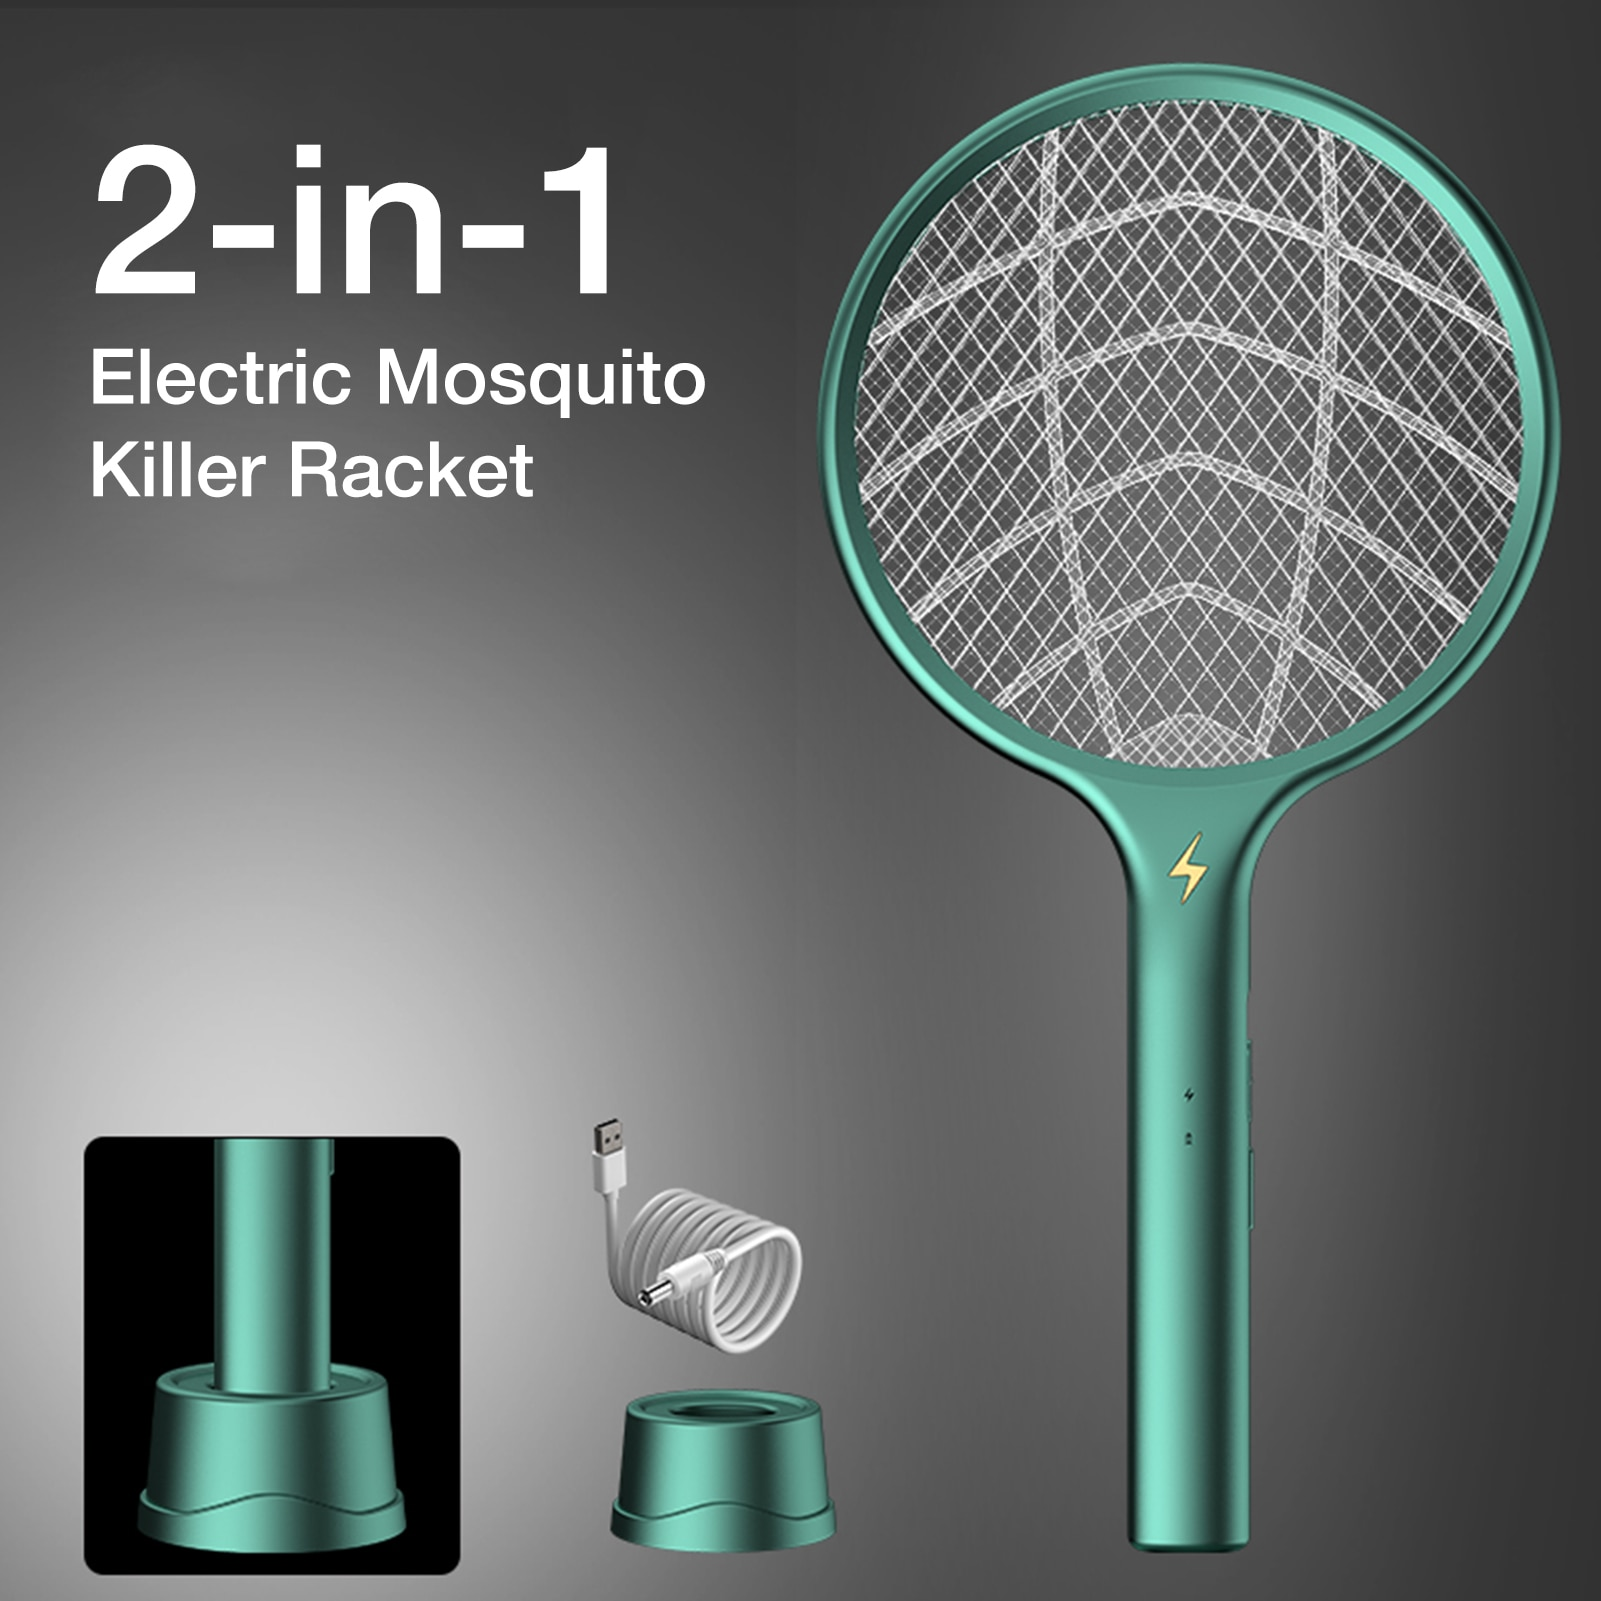 electric mosquito killer swatter home pest control handheld mosquito racket insect bug racket zapper fly mosquito killer trap Electric Mosquito Killer Racket USB Fly Trap Lamp Home Bug Insect Swatter Zapper Pest Control 1200mAh